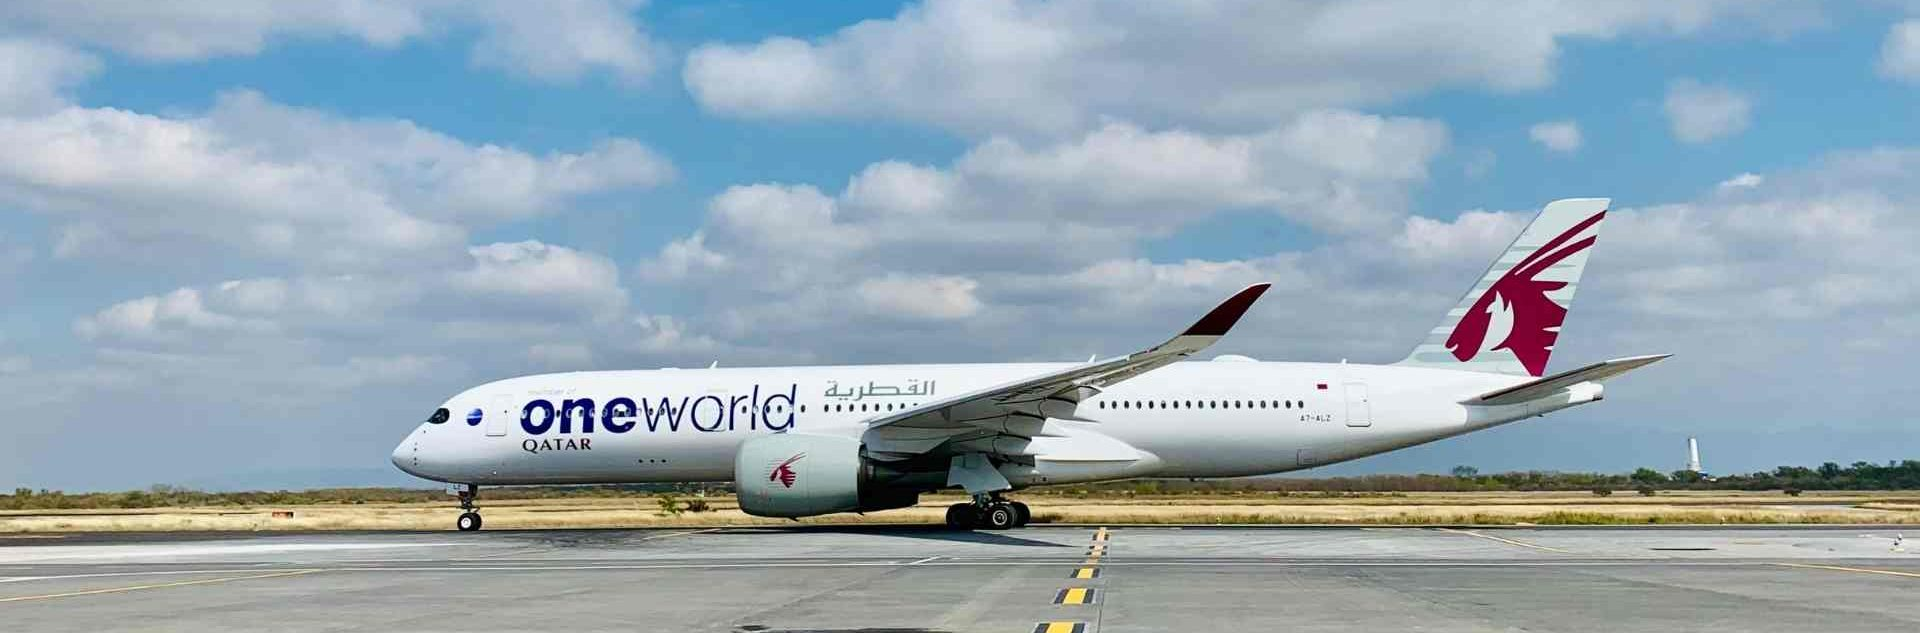 Qatar Airways Named #1 Airline for 2021 - SkyGoFly